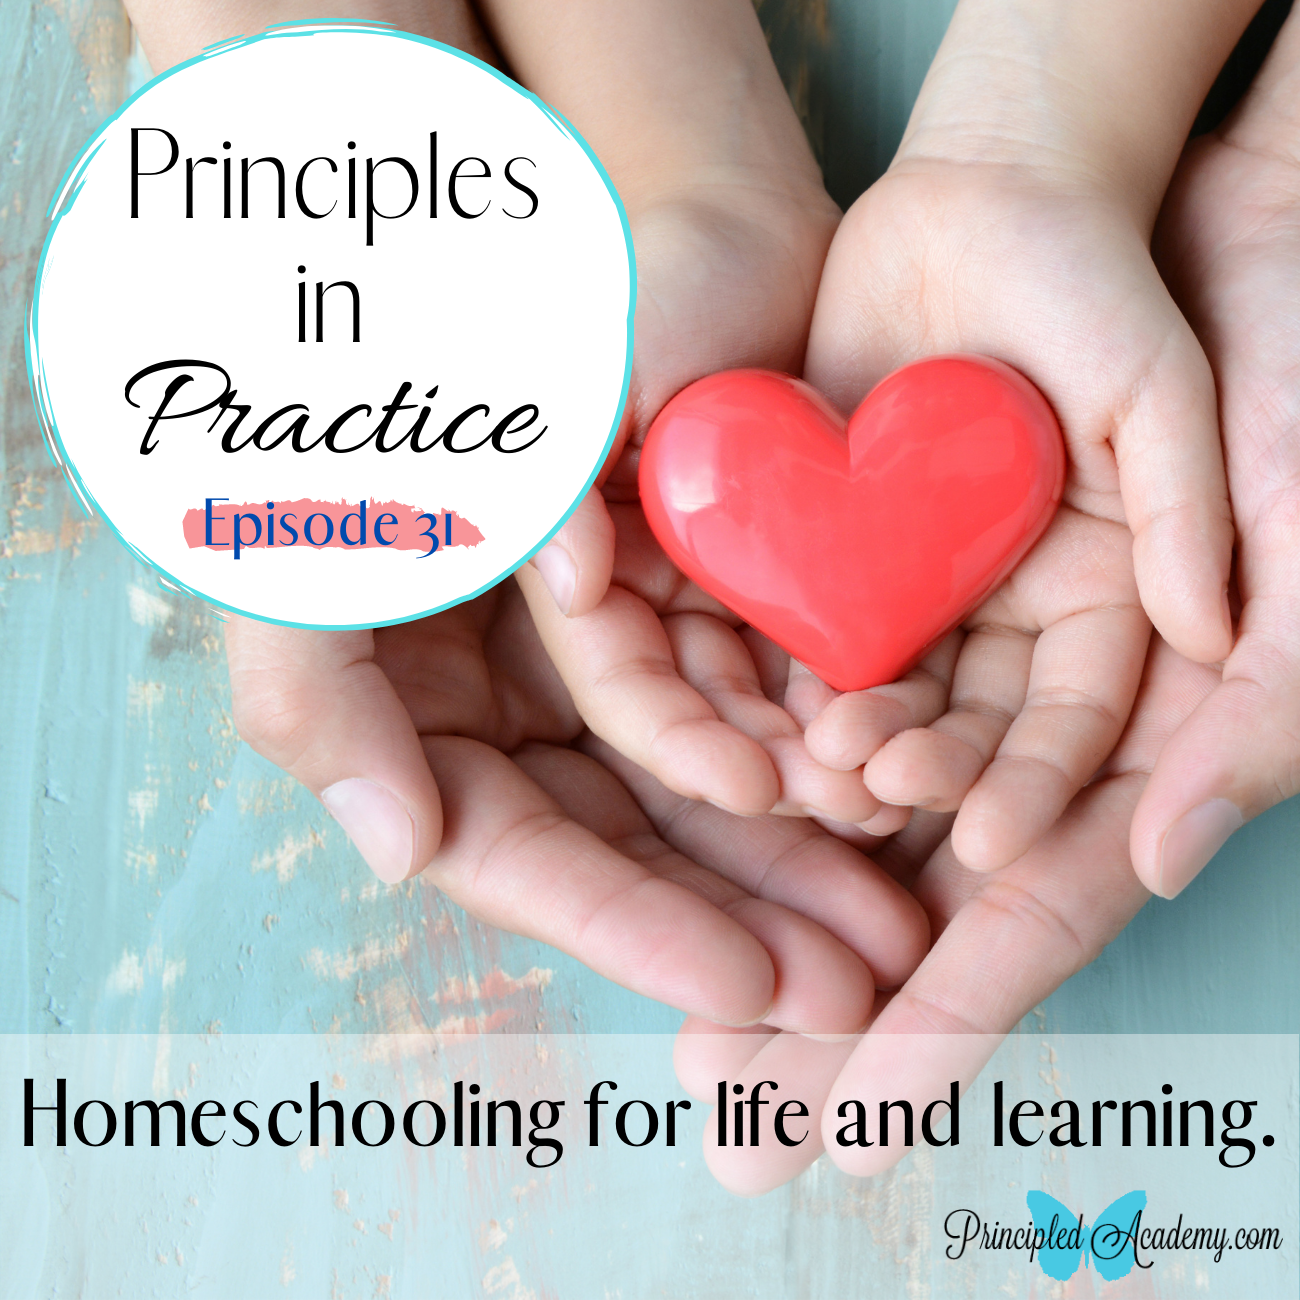 The-Principle-Approach-Podcast-The-Tutorial-Spirit-Biblical-Classical-Homeschoolers-Podcast-Christian-Homeschooling-Podcast